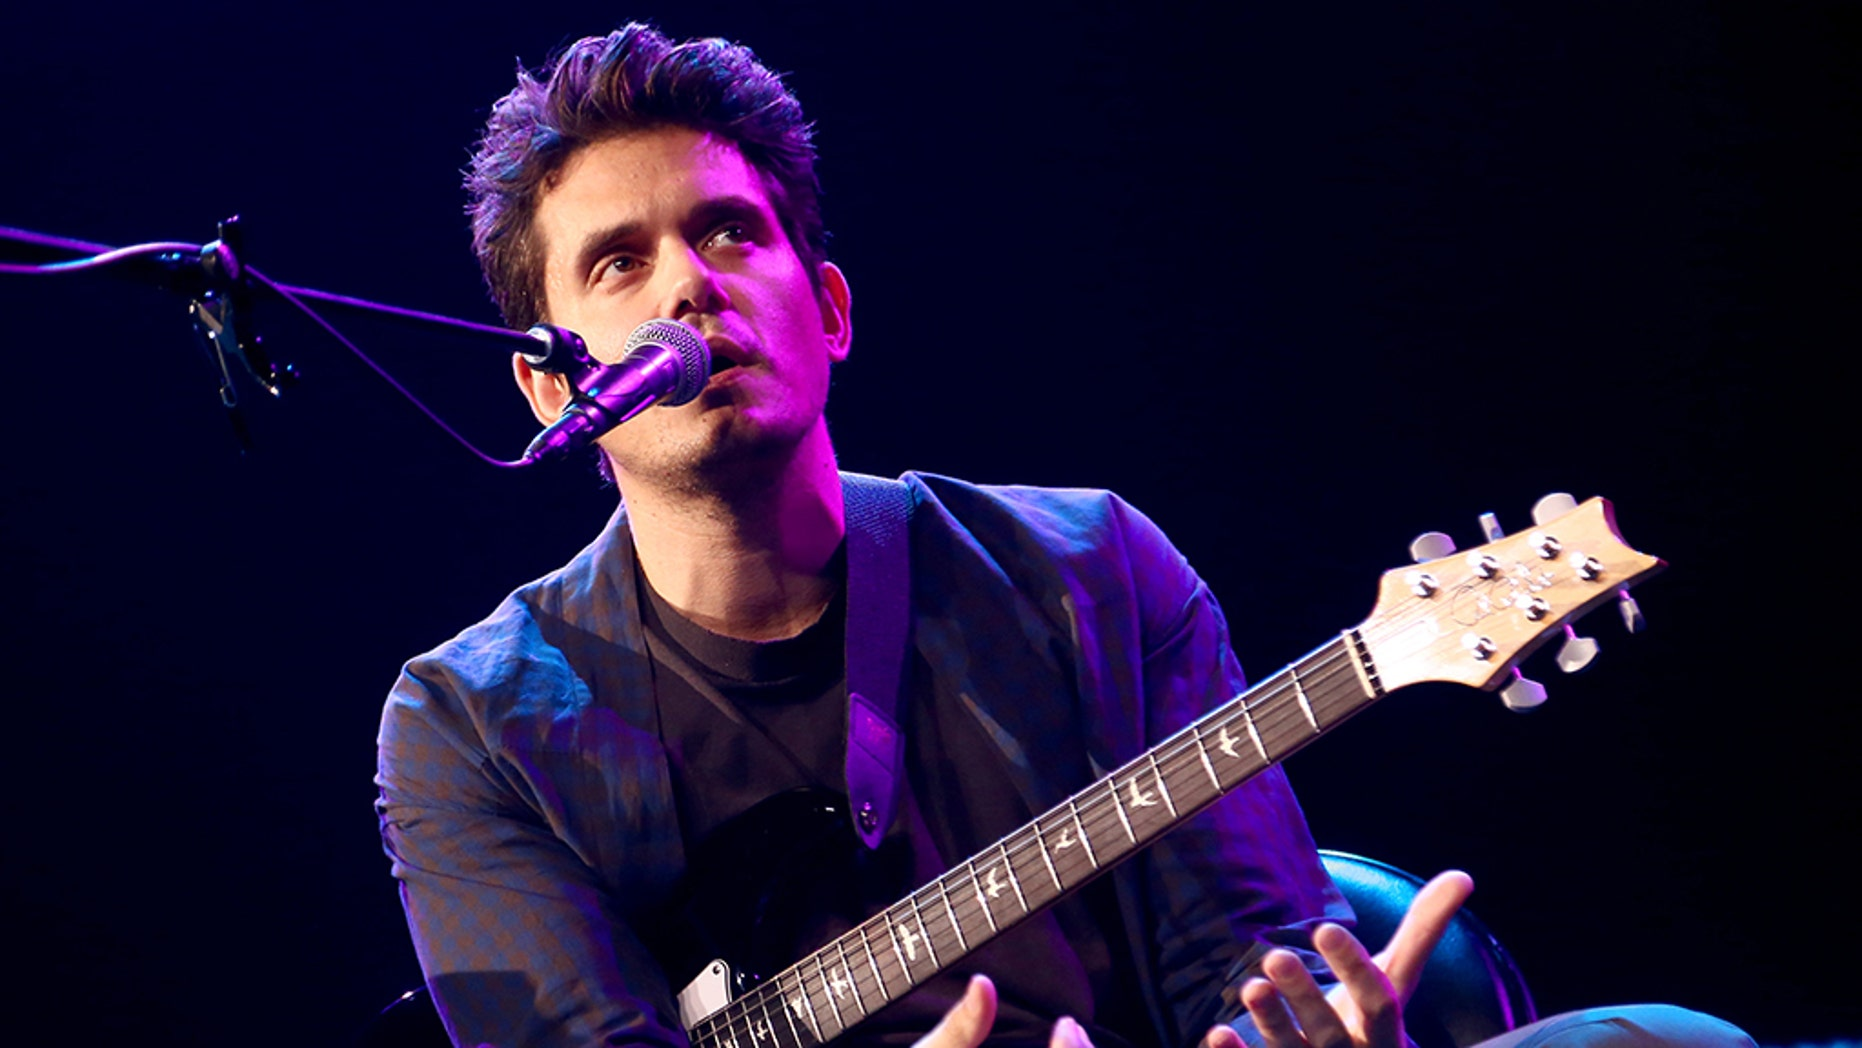 John Mayer said he was celebrating his second year of sobriety on Nov. 13, 2018.